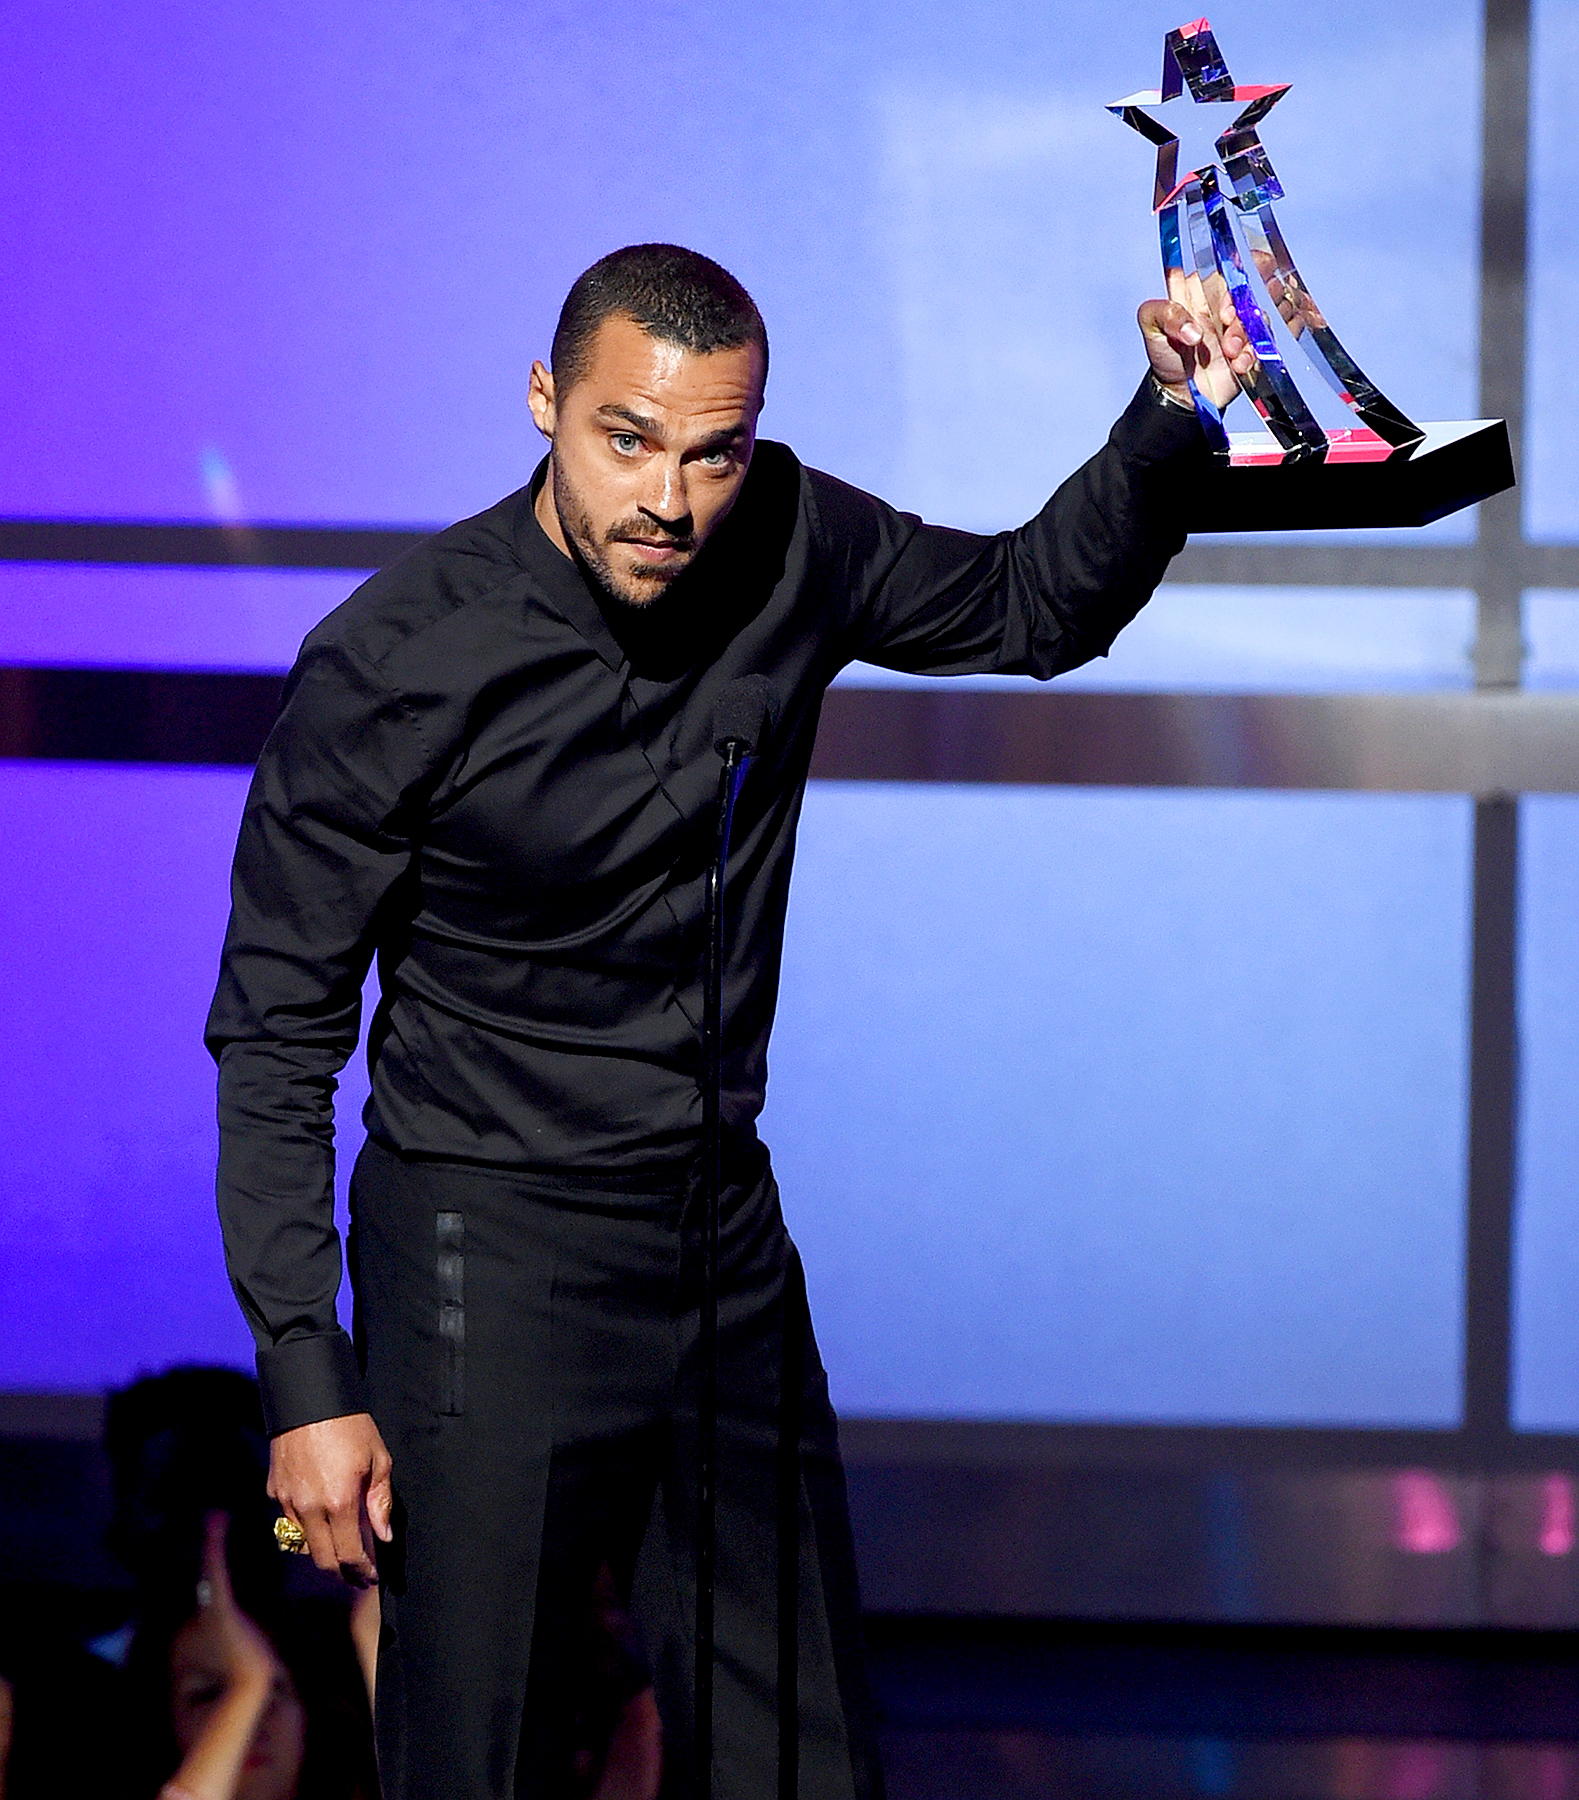 Jesse Williams accepts the Humanitarian Award onstage during the 2016 BET Awards.